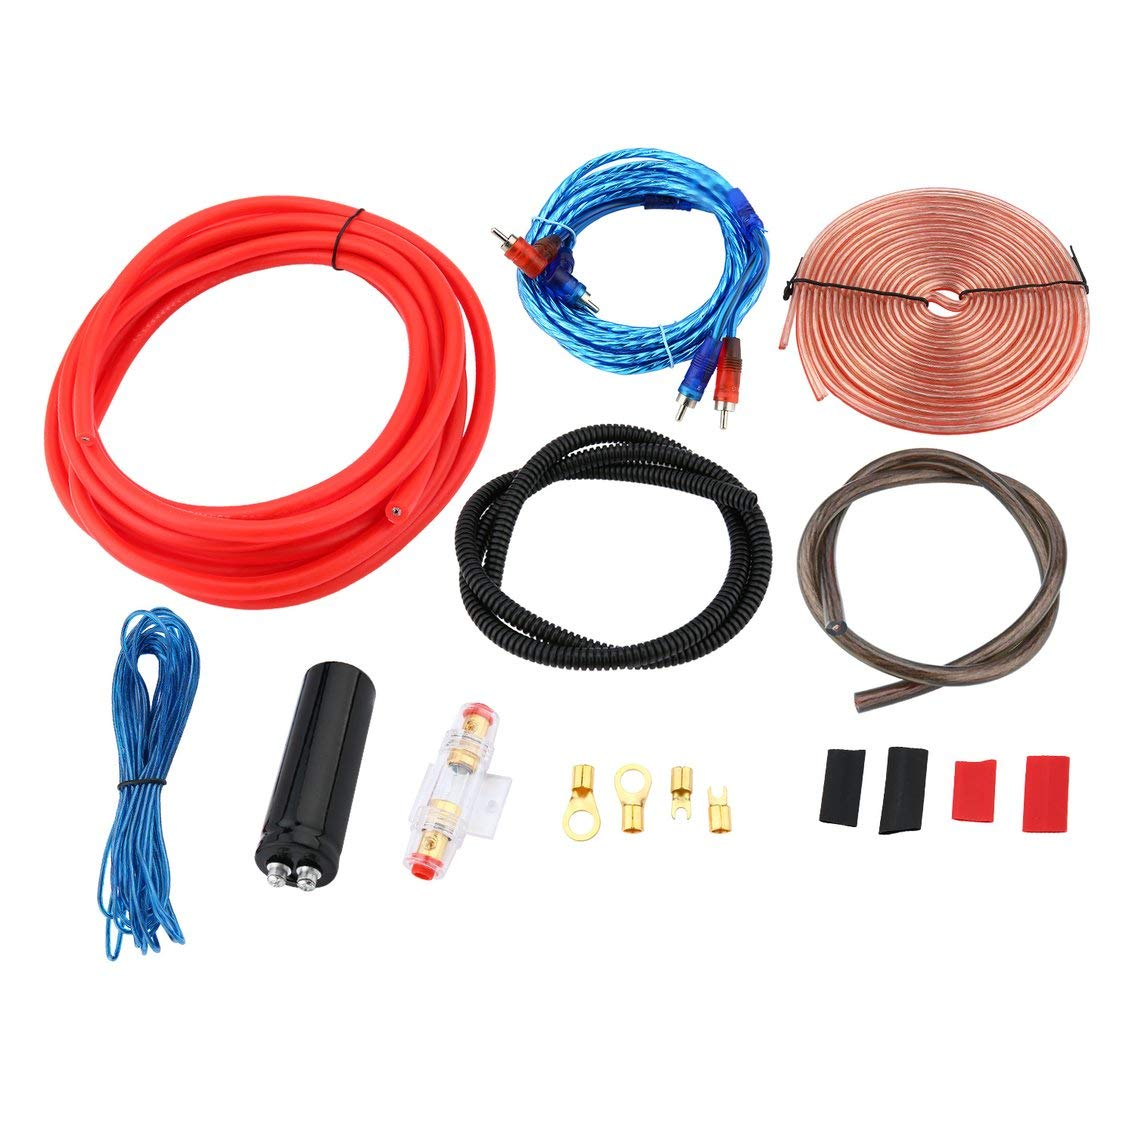 Mazur Professional 2300W 4 Gauge Amp Kit Amplifier Install Wiring & 2.5 Farad Digital Capacitor Installation Wiring Wire(Colorful)